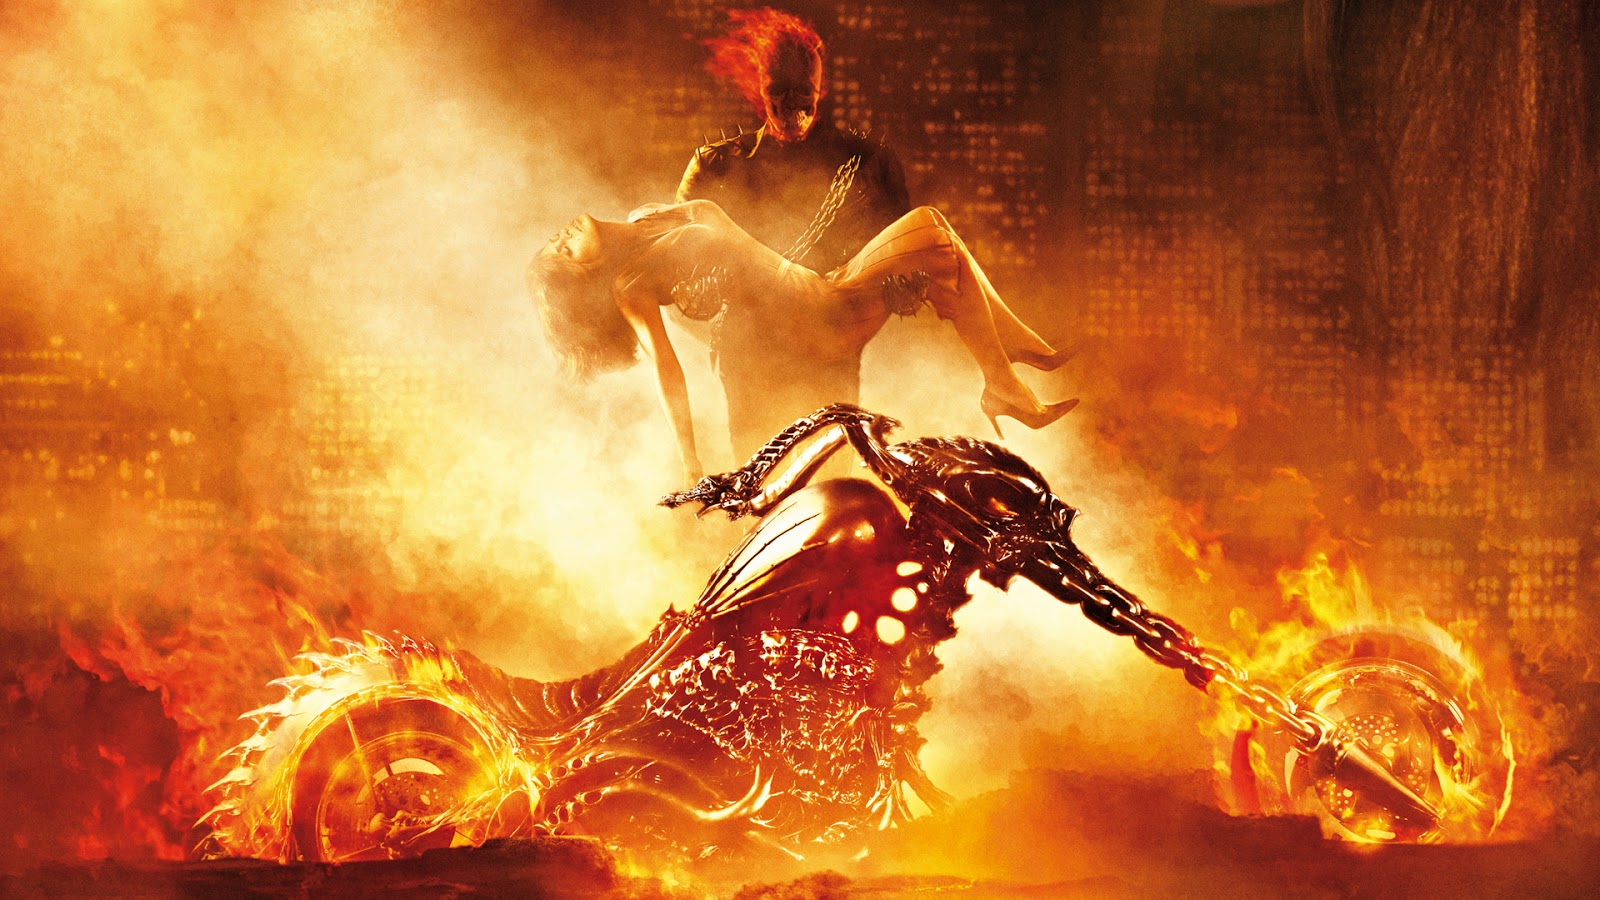 Real Ghost Wallpapper: Top 10 Collection of Ghost Rider HD ...